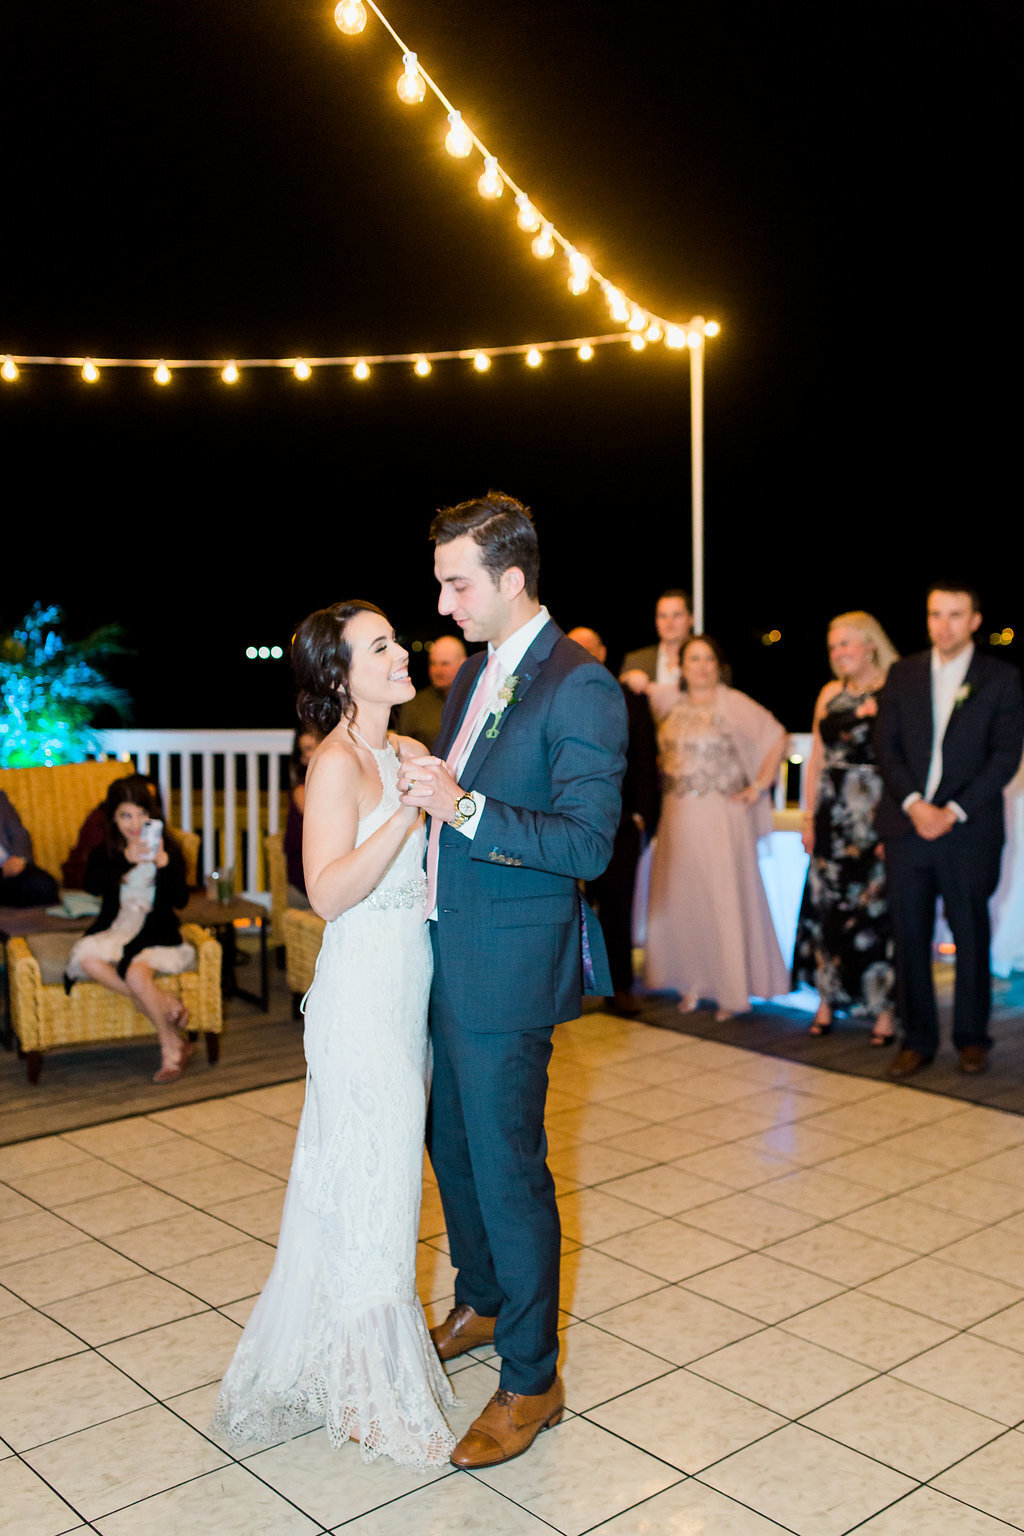 Key West Wedding | Amanda + Michael | Ocean Key Resort26